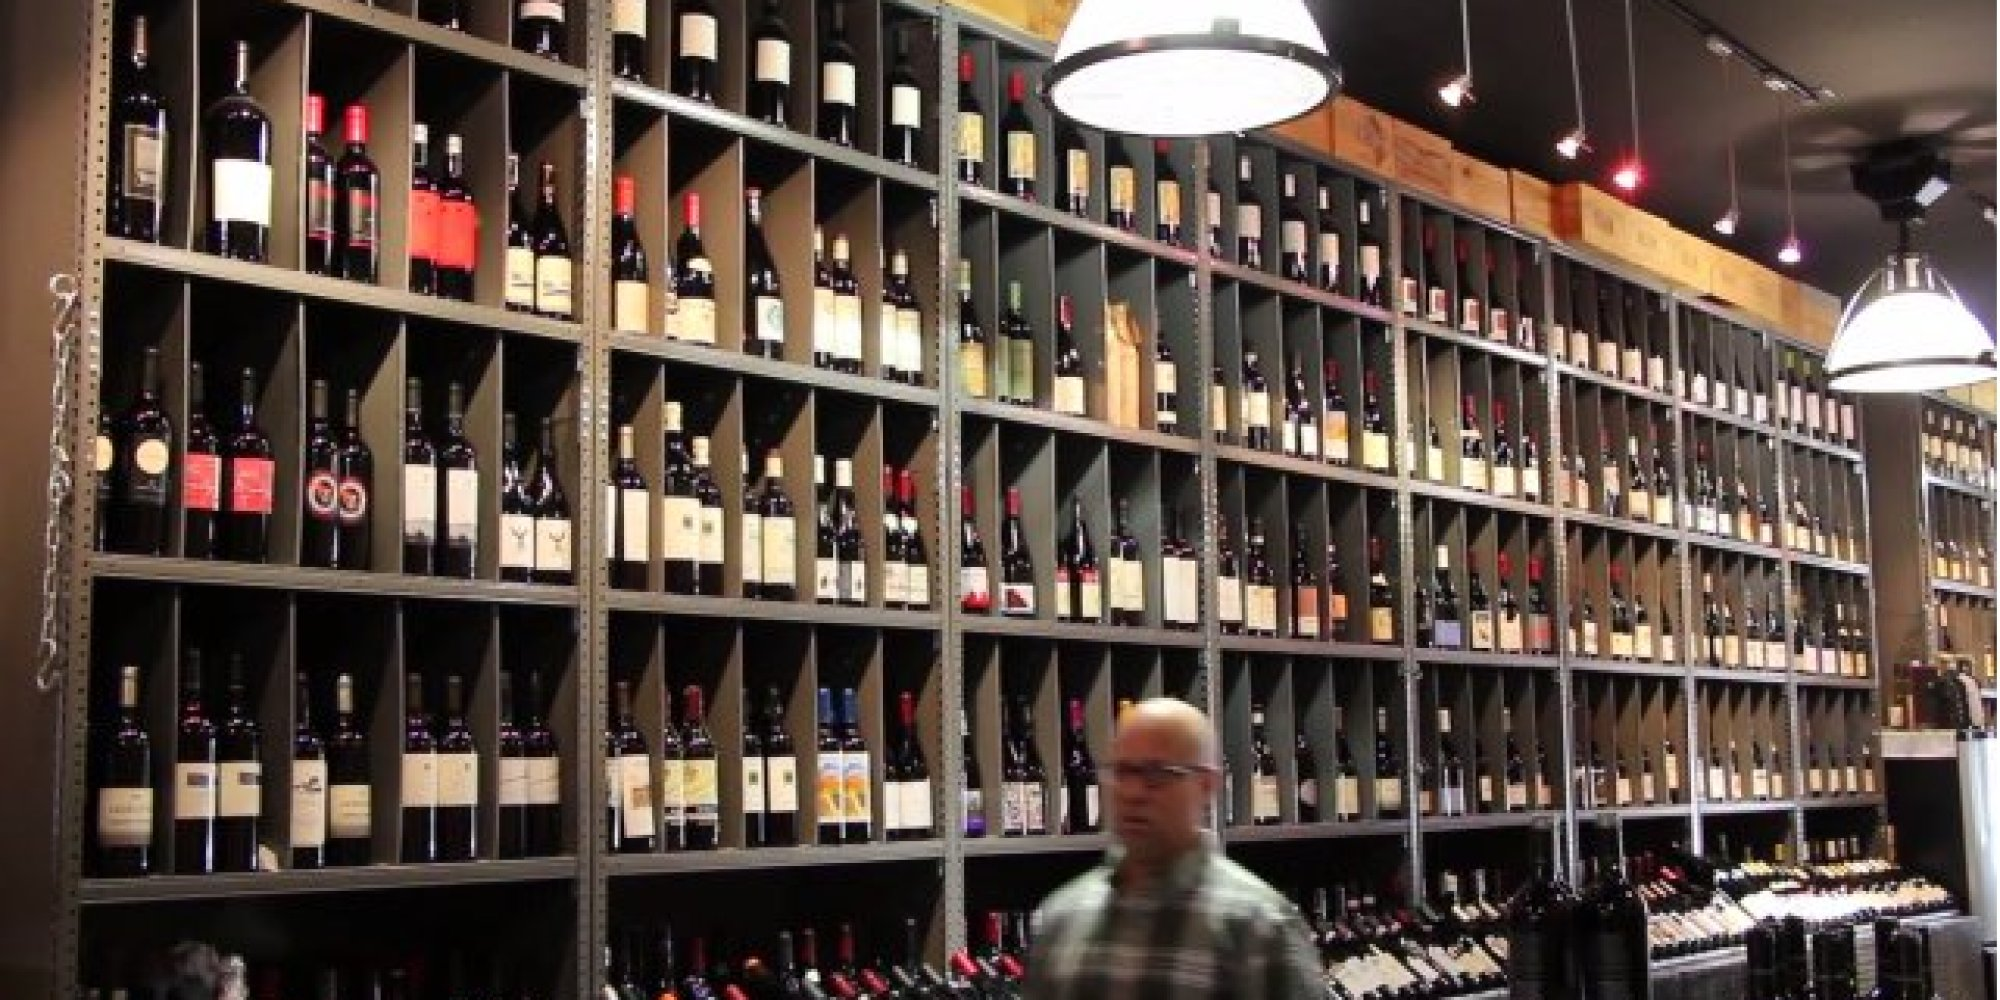 Wolfe 39 s wine shoppe 39 s jeffrey wolfe 39 there aren 39 t any rules in wine 39 huffpost - Divorce shoppe ...